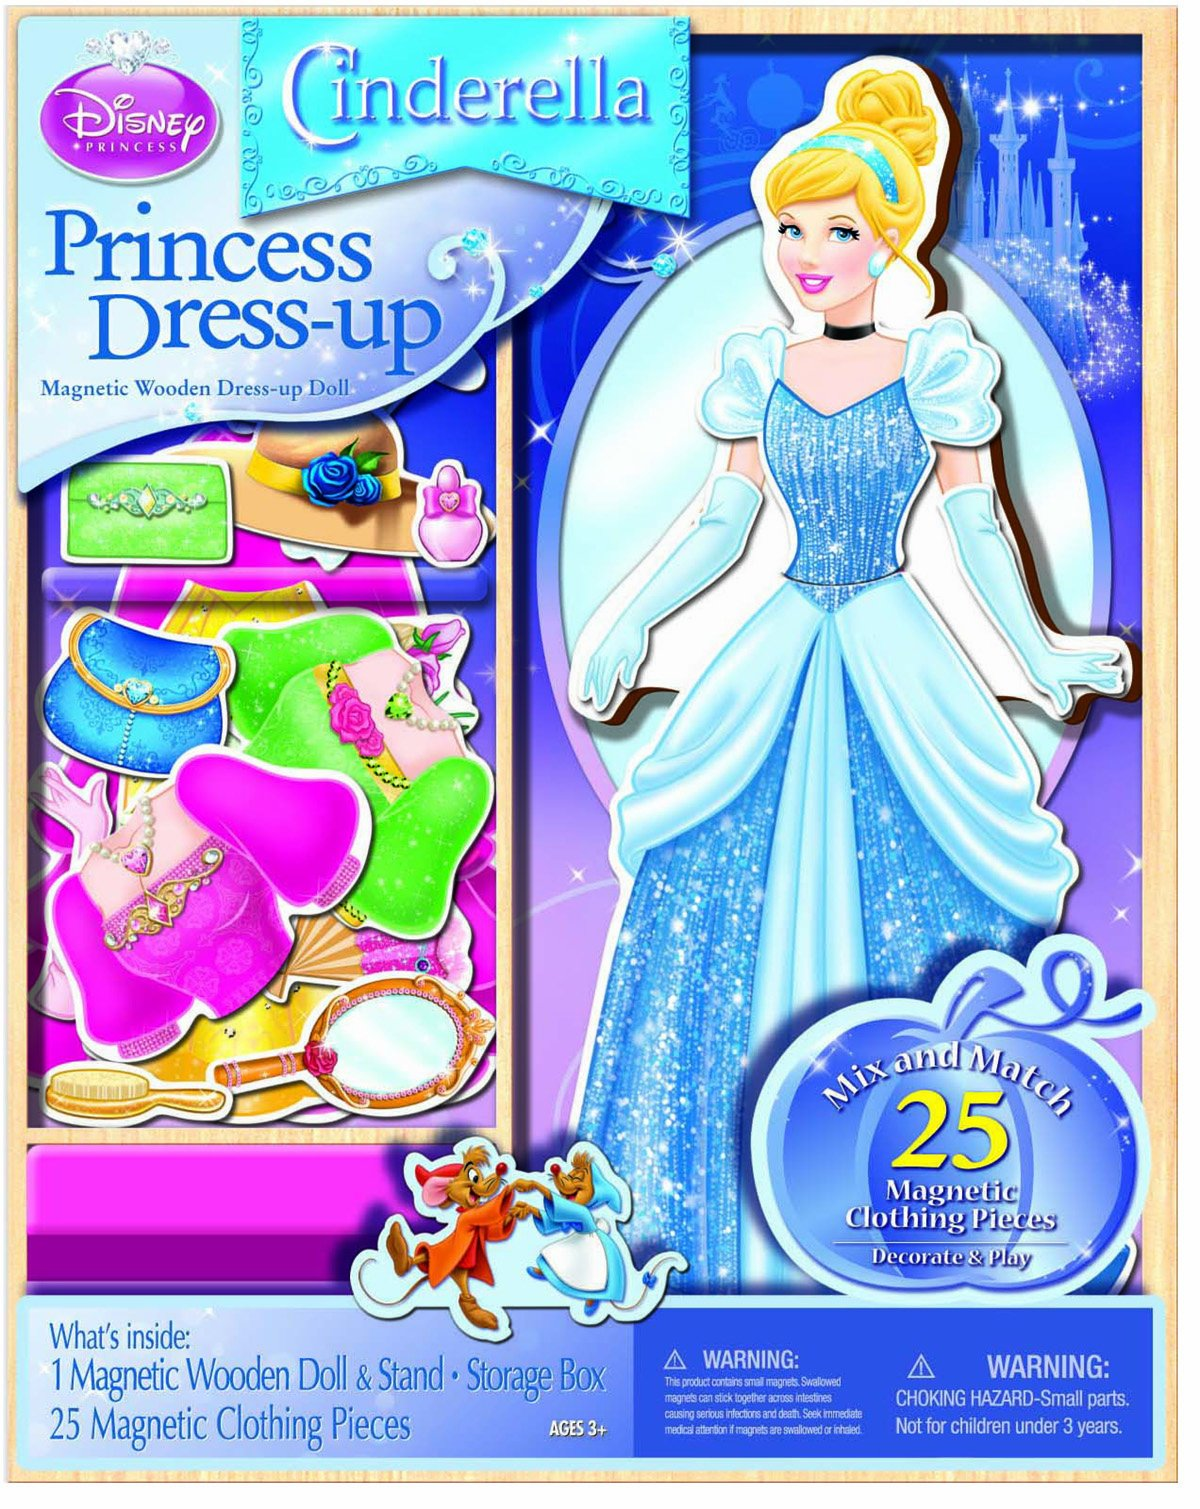 Disney Princess Magnetic Dress Up Playset -- Cinderella Magnetic Dress Up Doll (25 Pc Set) by Disney Princess